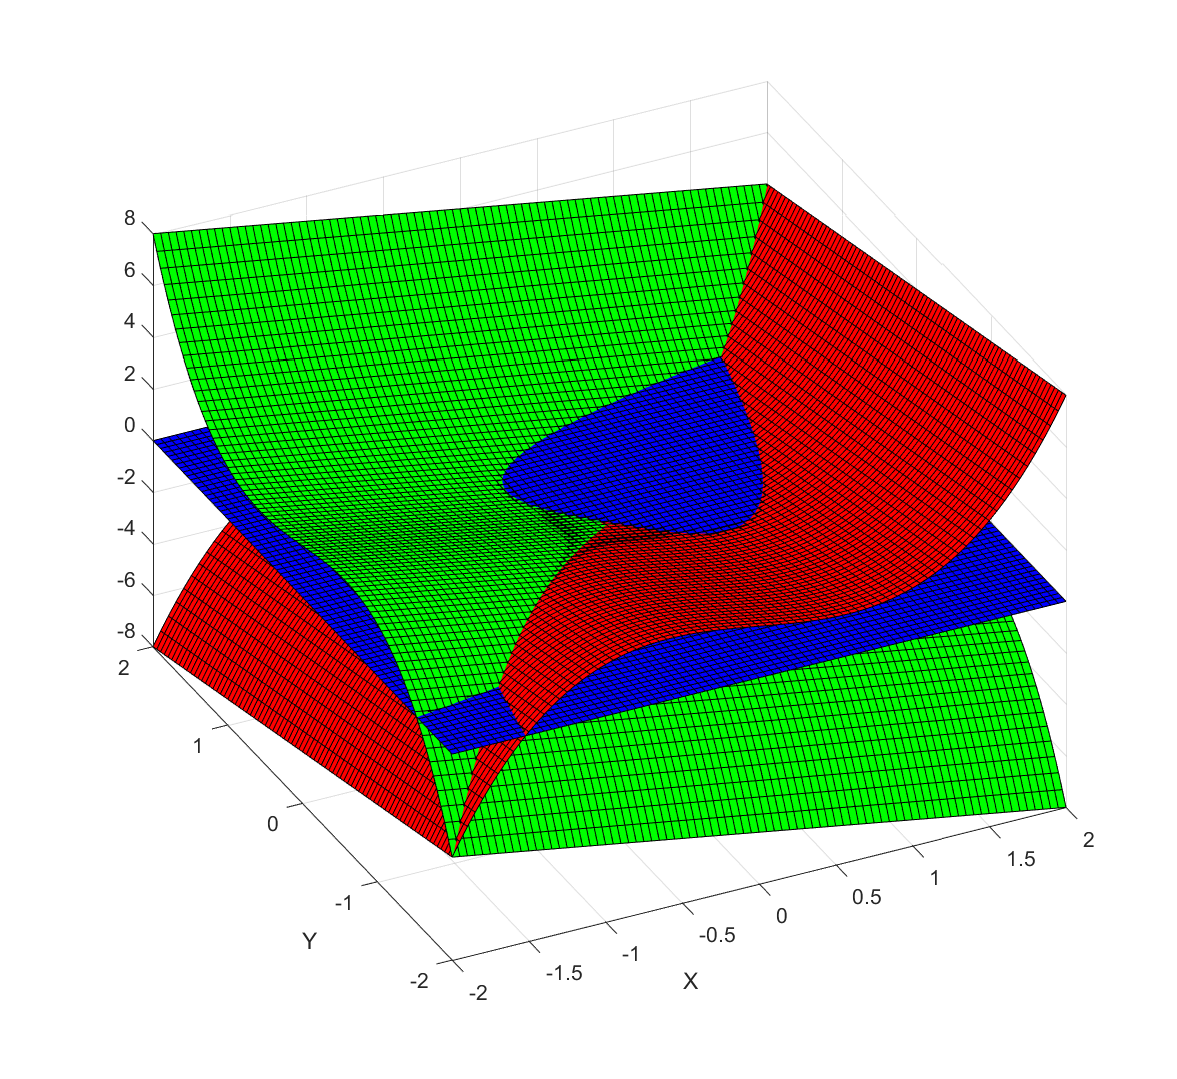 Plot of x^3-x-y (red), y^3-x-y (green) and z=0 (blue). The zeros found using Newton's method are the points where red, green and blue meet.